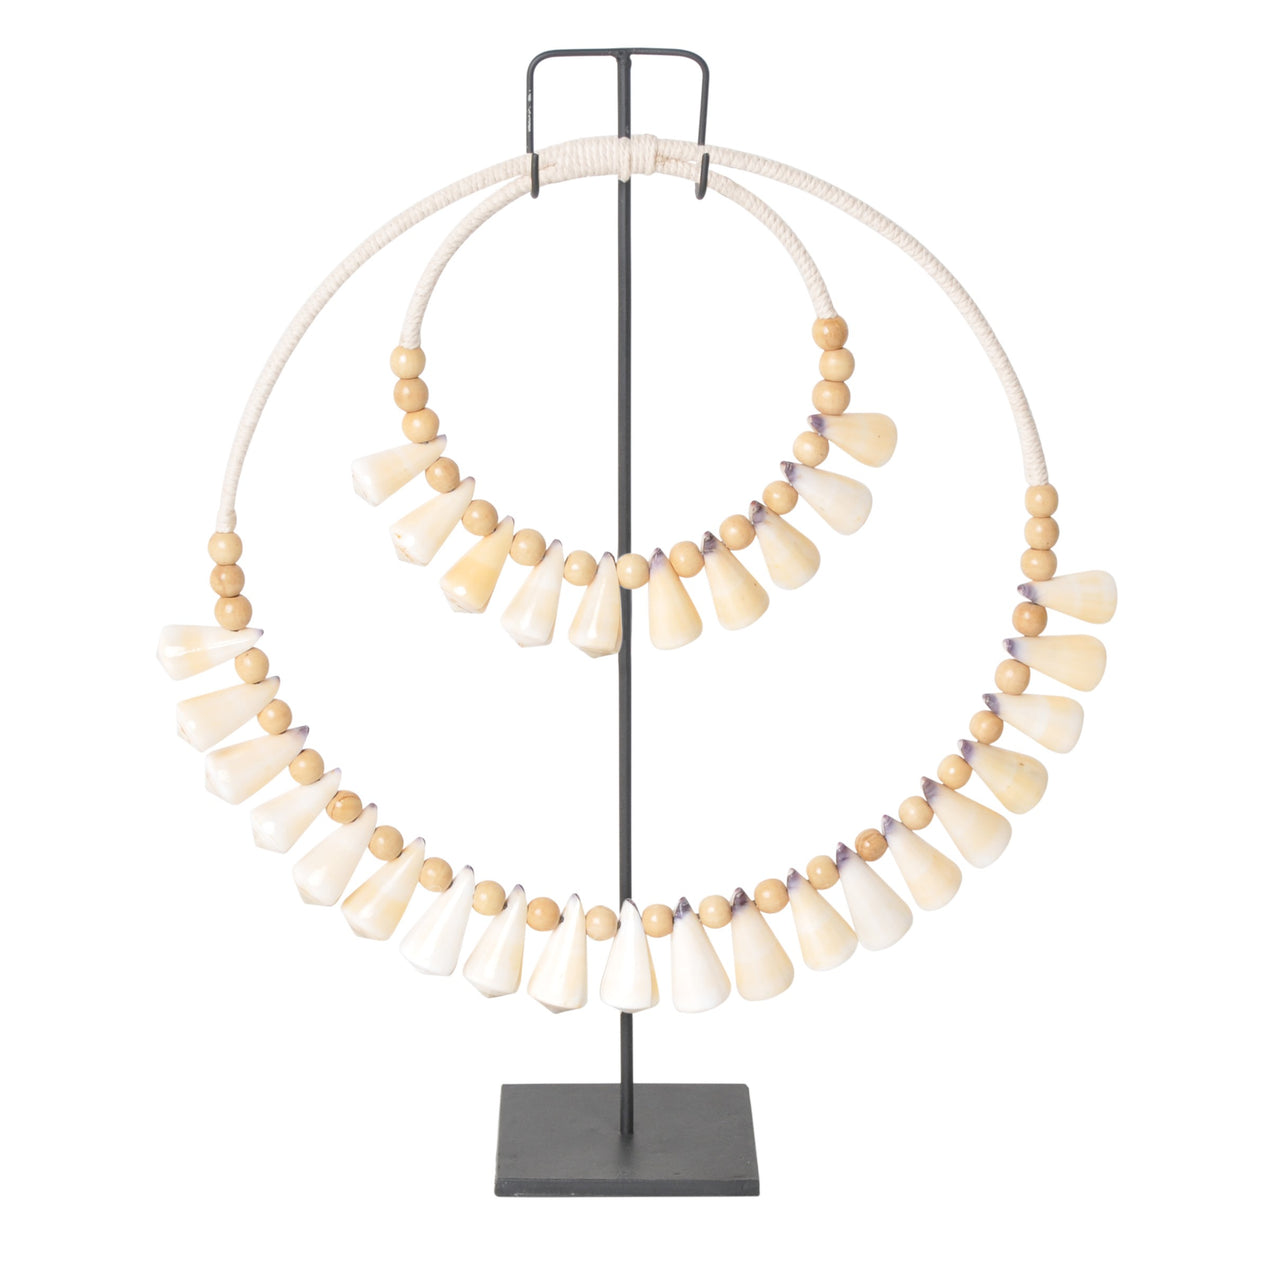 shell decor hoop necklace on stand